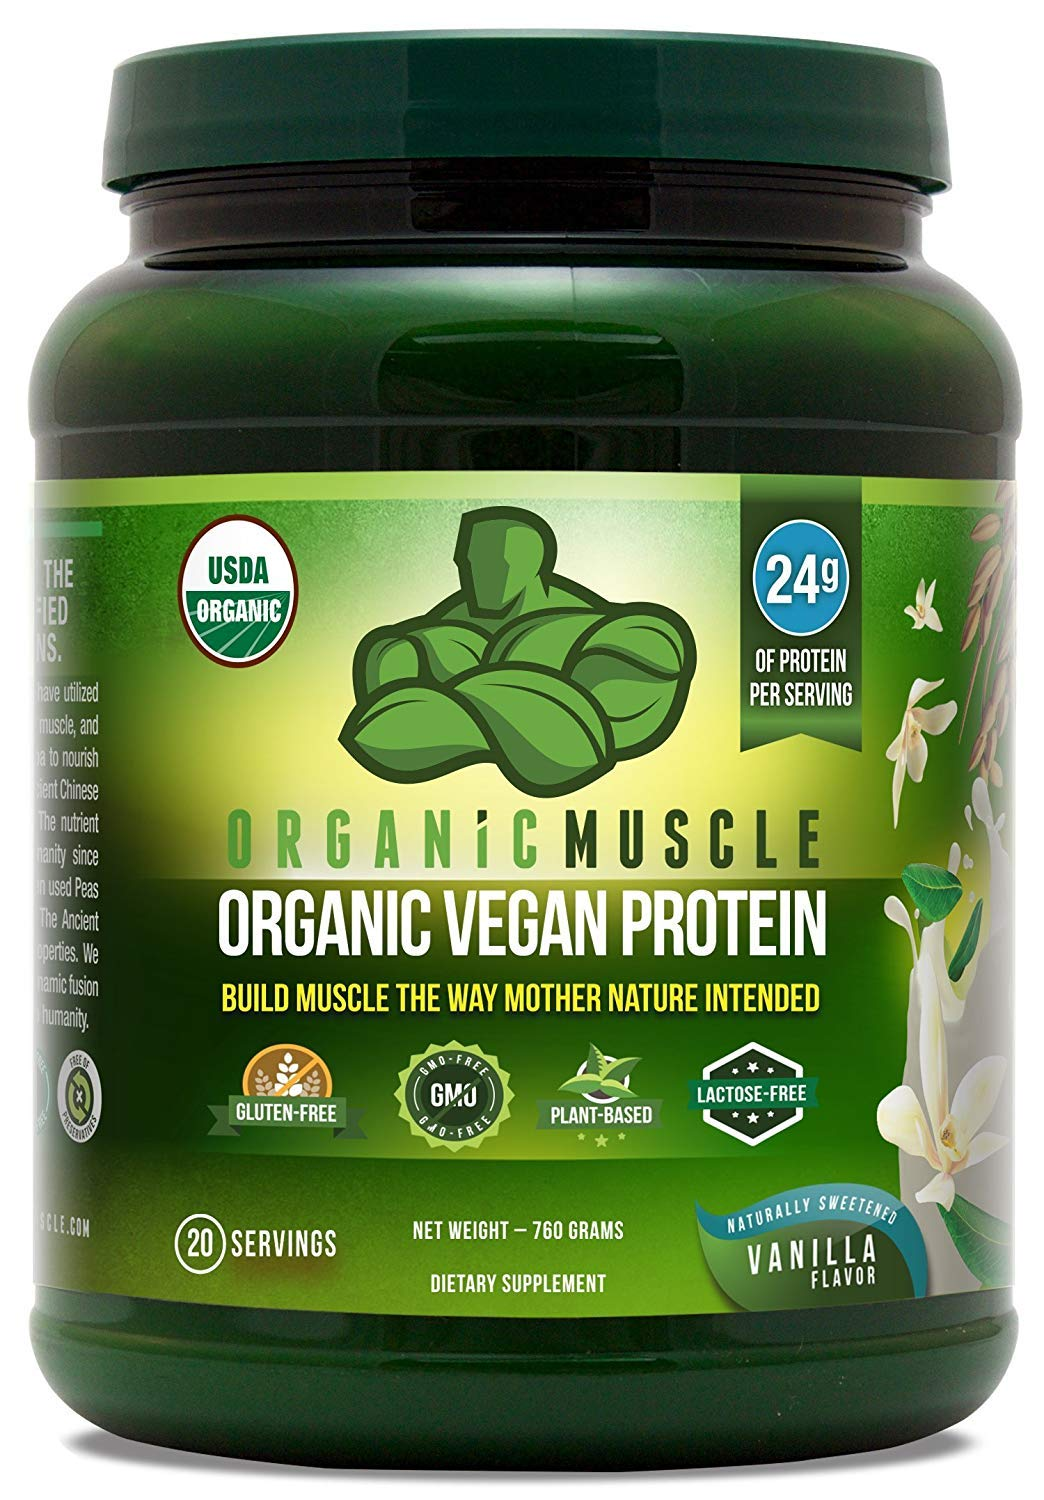 USDA Organic Vegan Protein Powder - Great Tasting Vanilla Flavor W/ 24g of Protein -100% Organic Plant Based Protein Blend of Pea, Hemp, Rice Protein +Chia Seed, Flax Seed -760g - ORGANIC MUSCLE by Organic Muscle